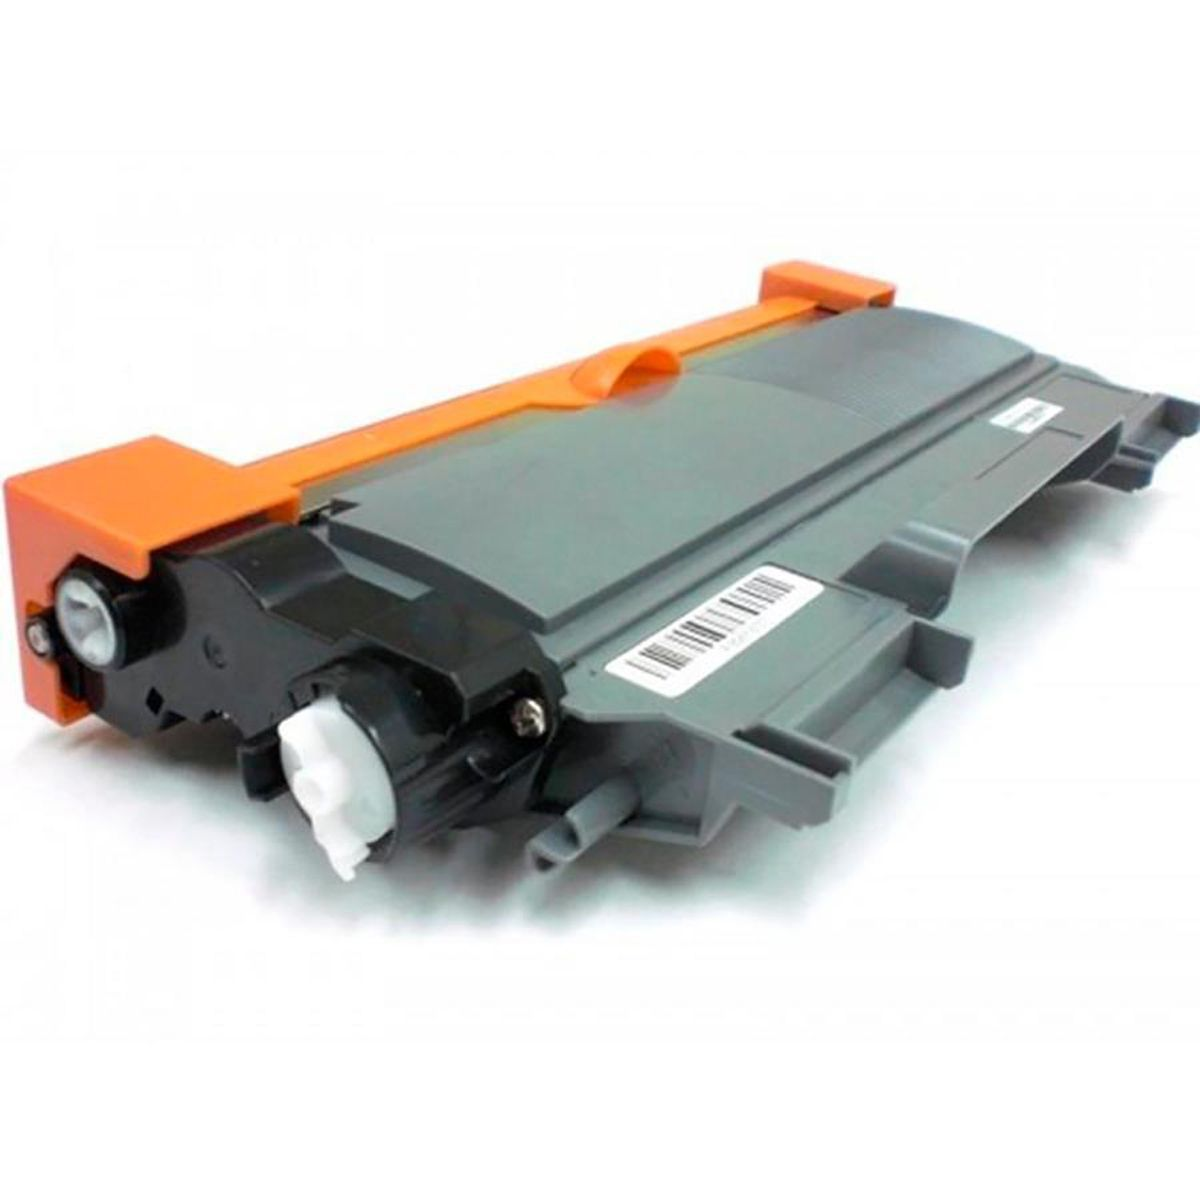 Toner Brother TN420 TN450 - DCP7055 DCP7065 - Compativel - 2,6K